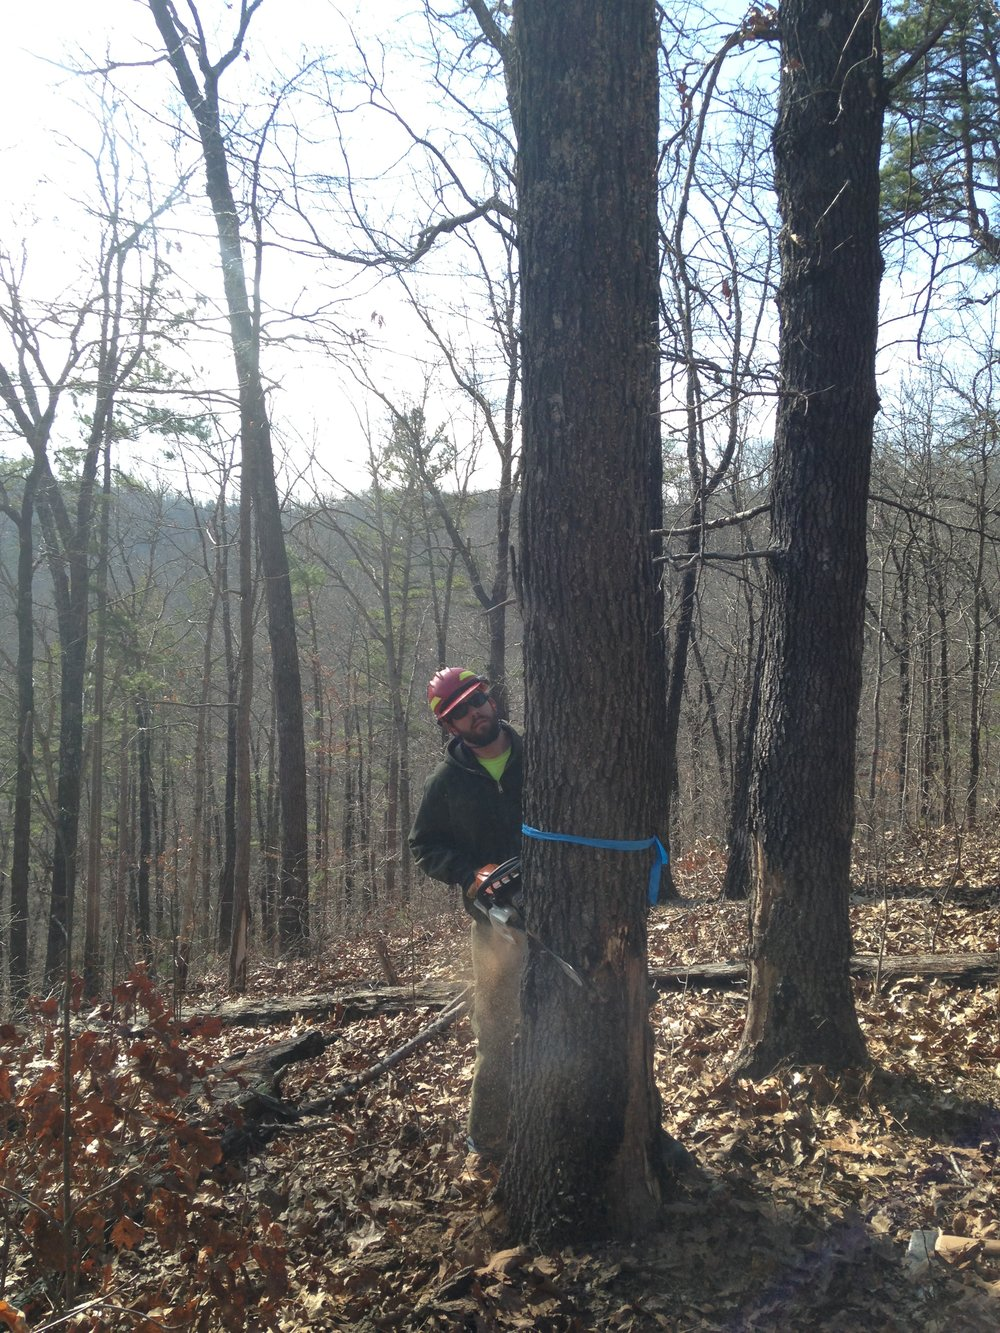 Brandon Janney, Year 23, fells a tree for a timber stand improvement project near Eminence, MO, 2016